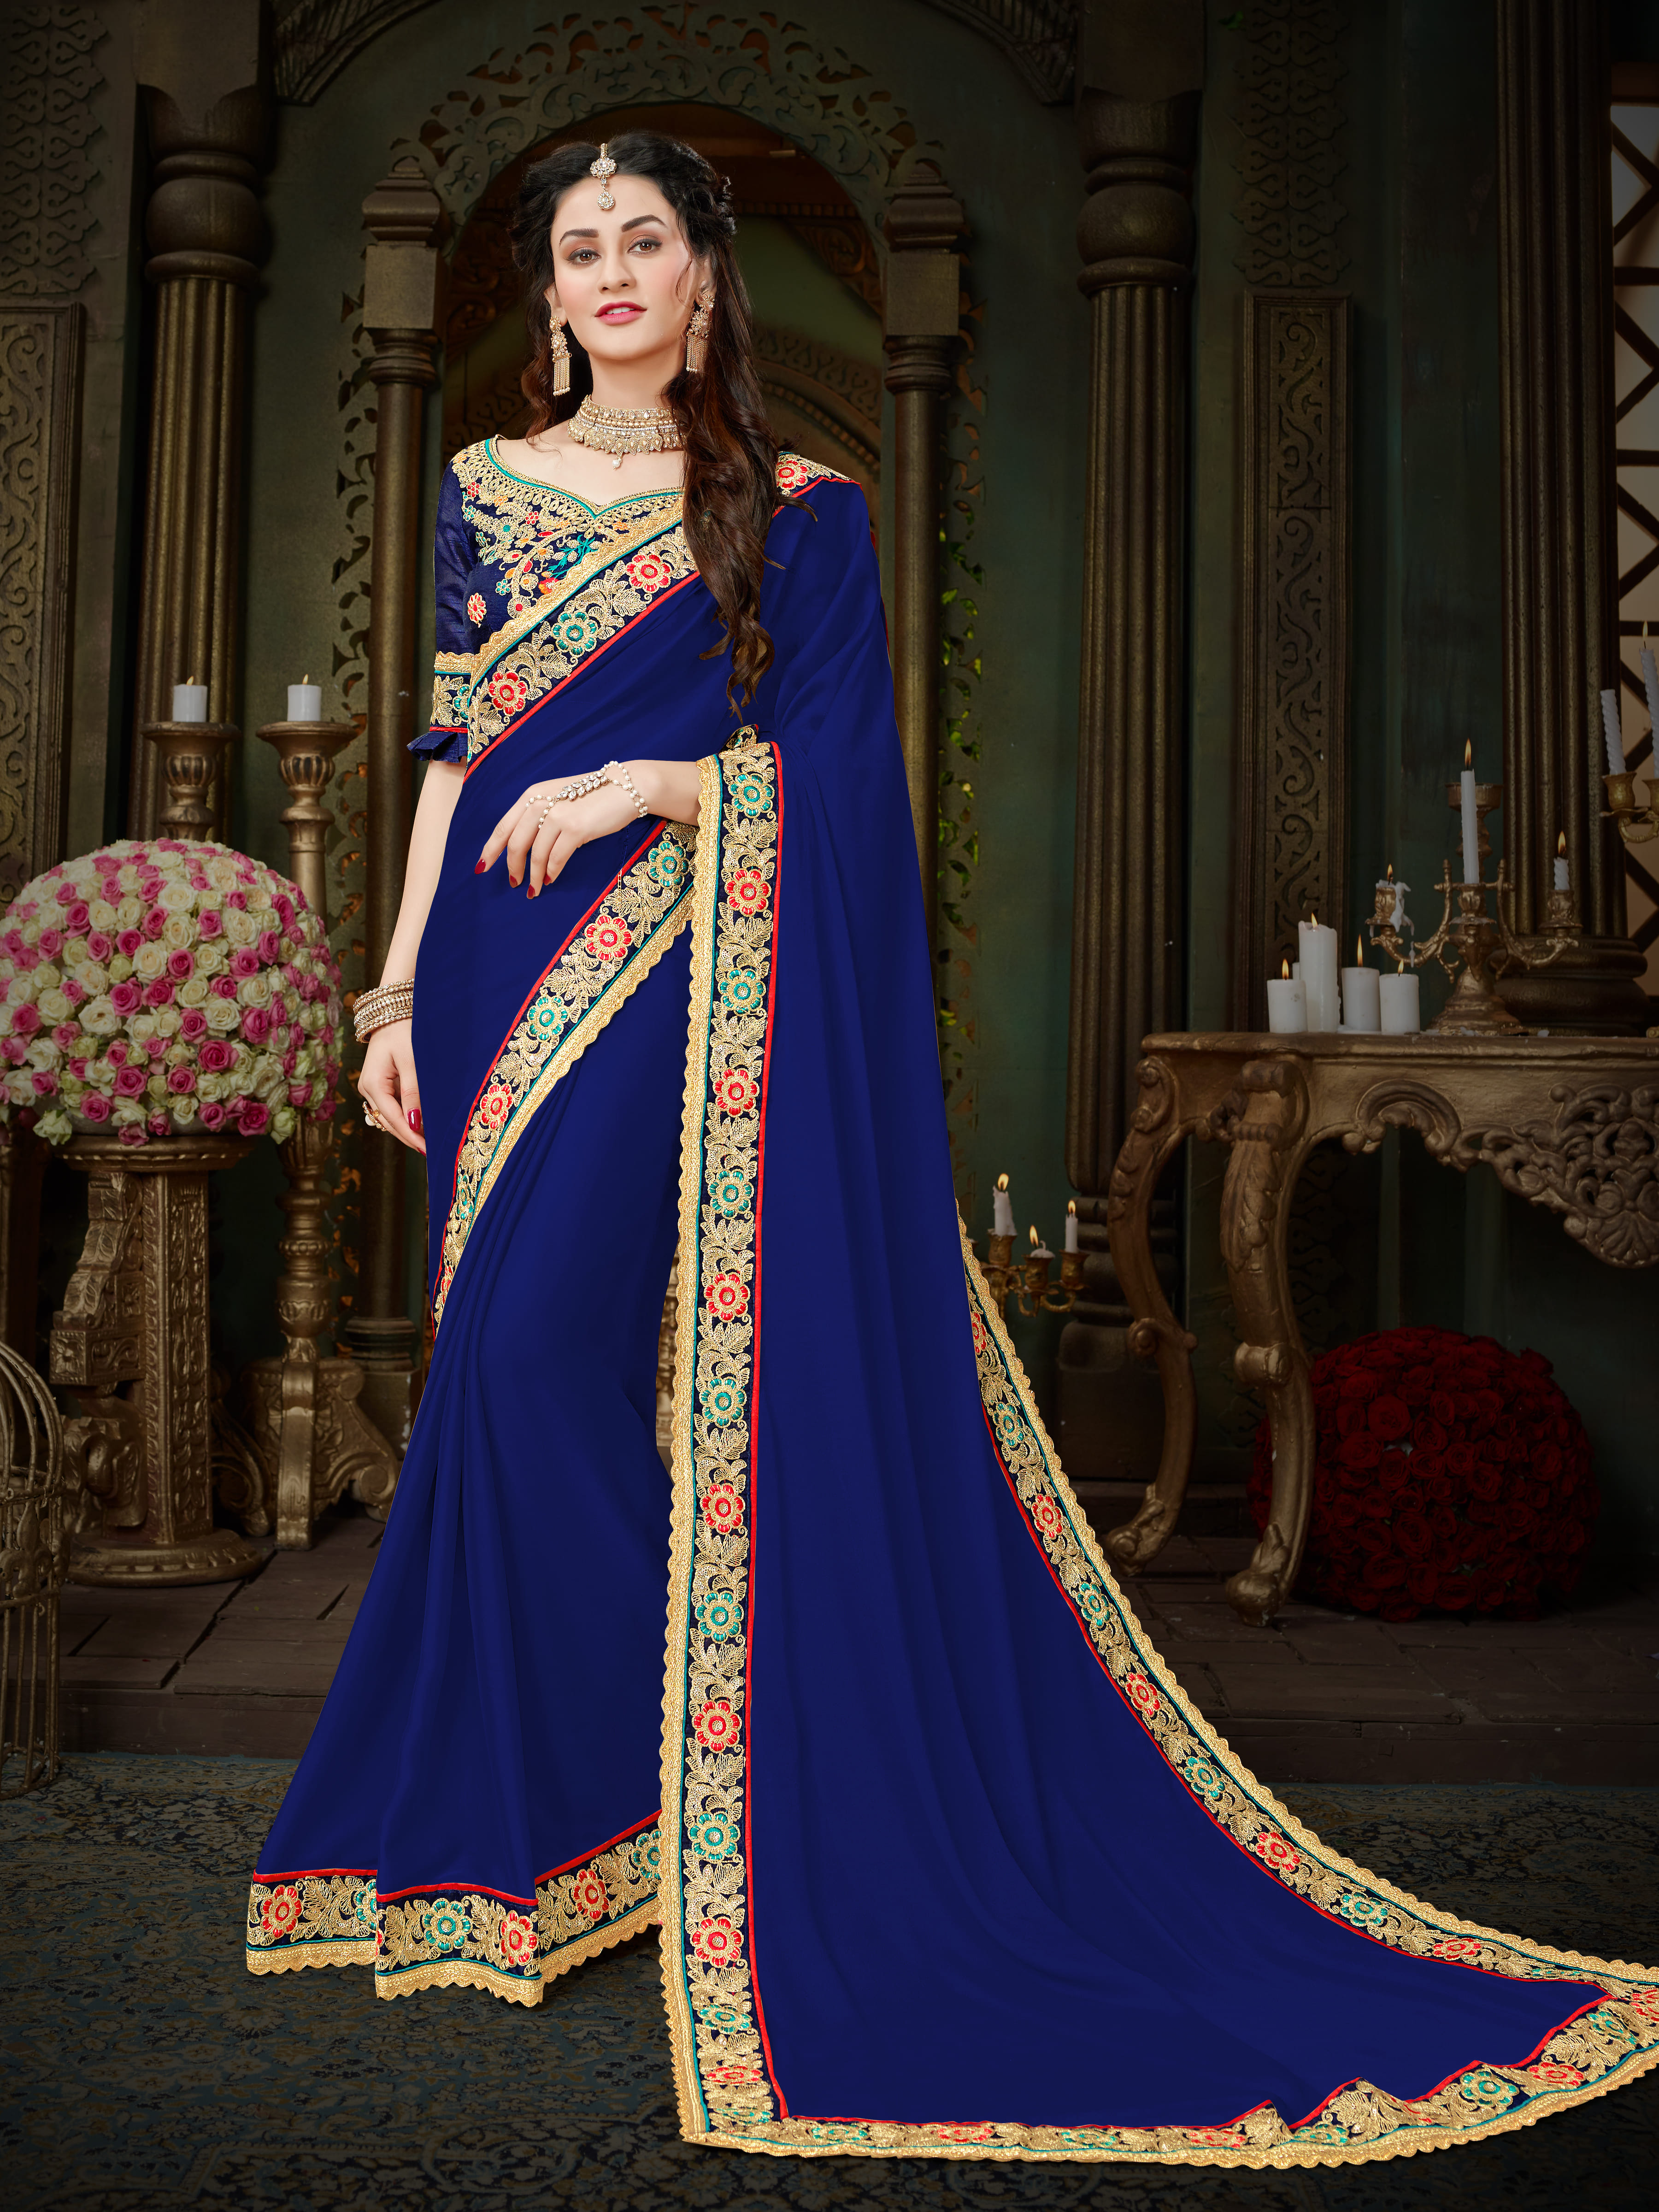 bdbe896eaa Manohari Blue Embroidered Georgette Saree with Blouse - Onlinefayda.com -  2631907